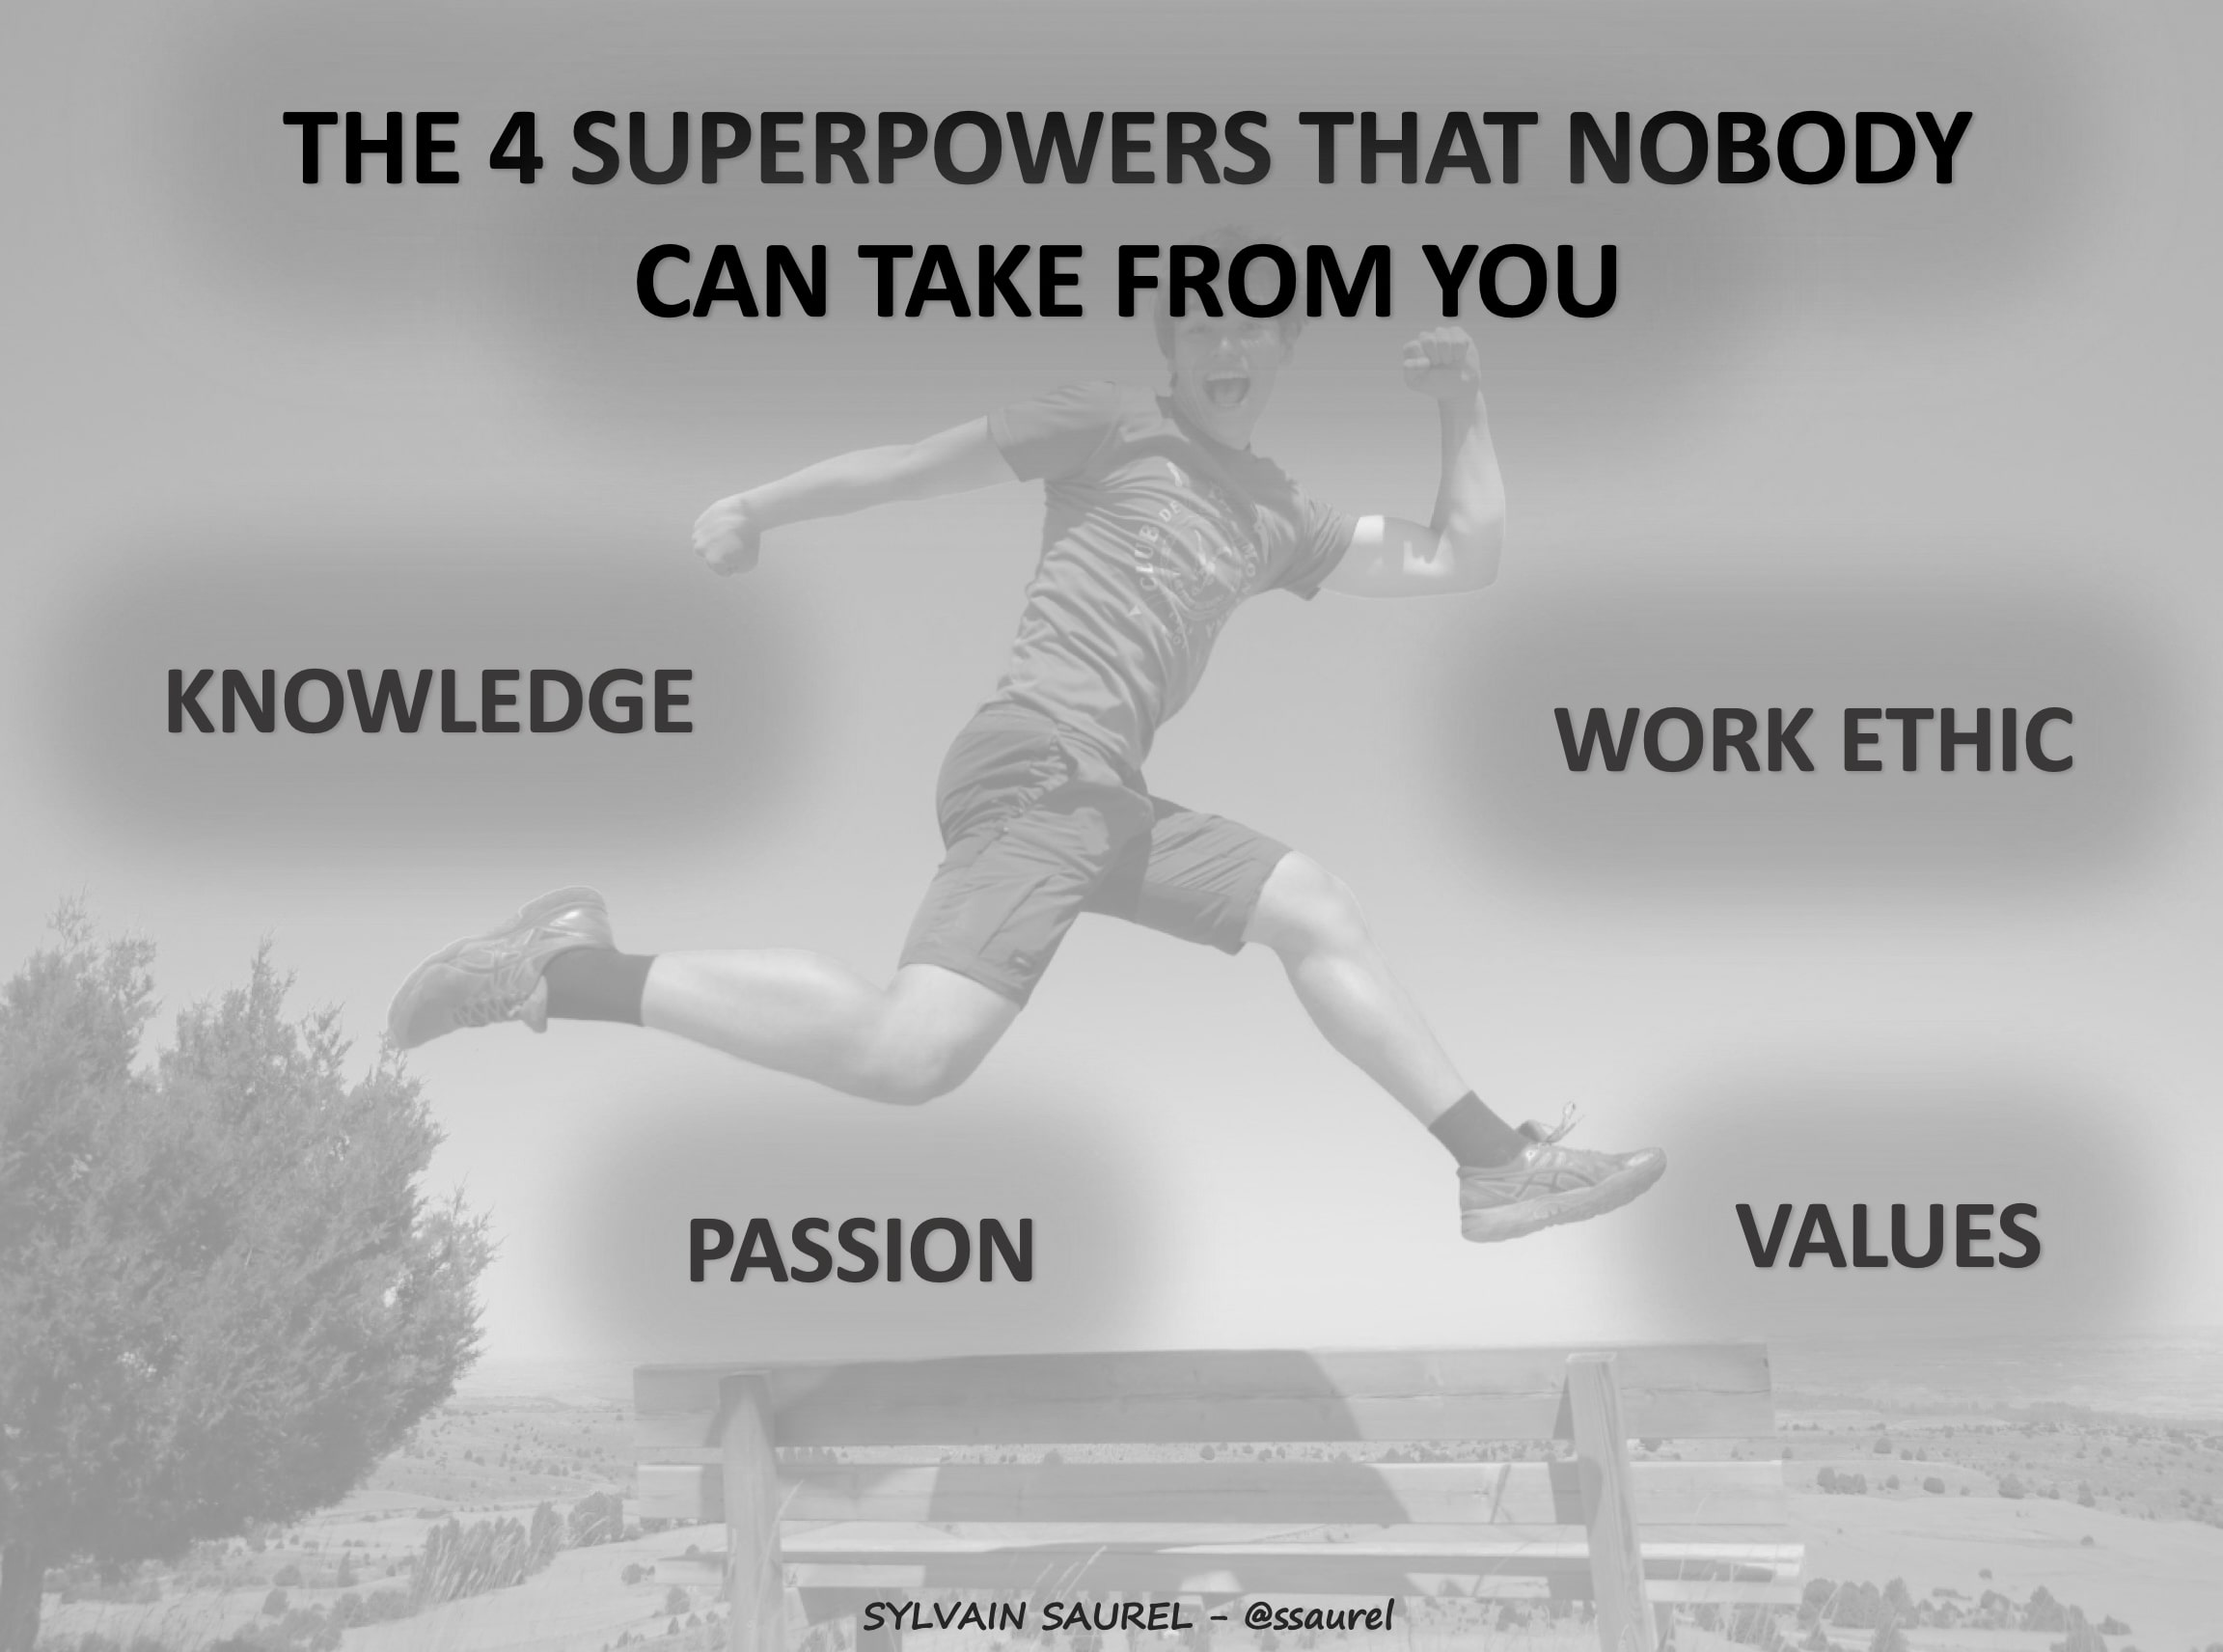 [Image] The 4 Superpowers That Nobody Can Take From You. Focus on developing these superpowers.